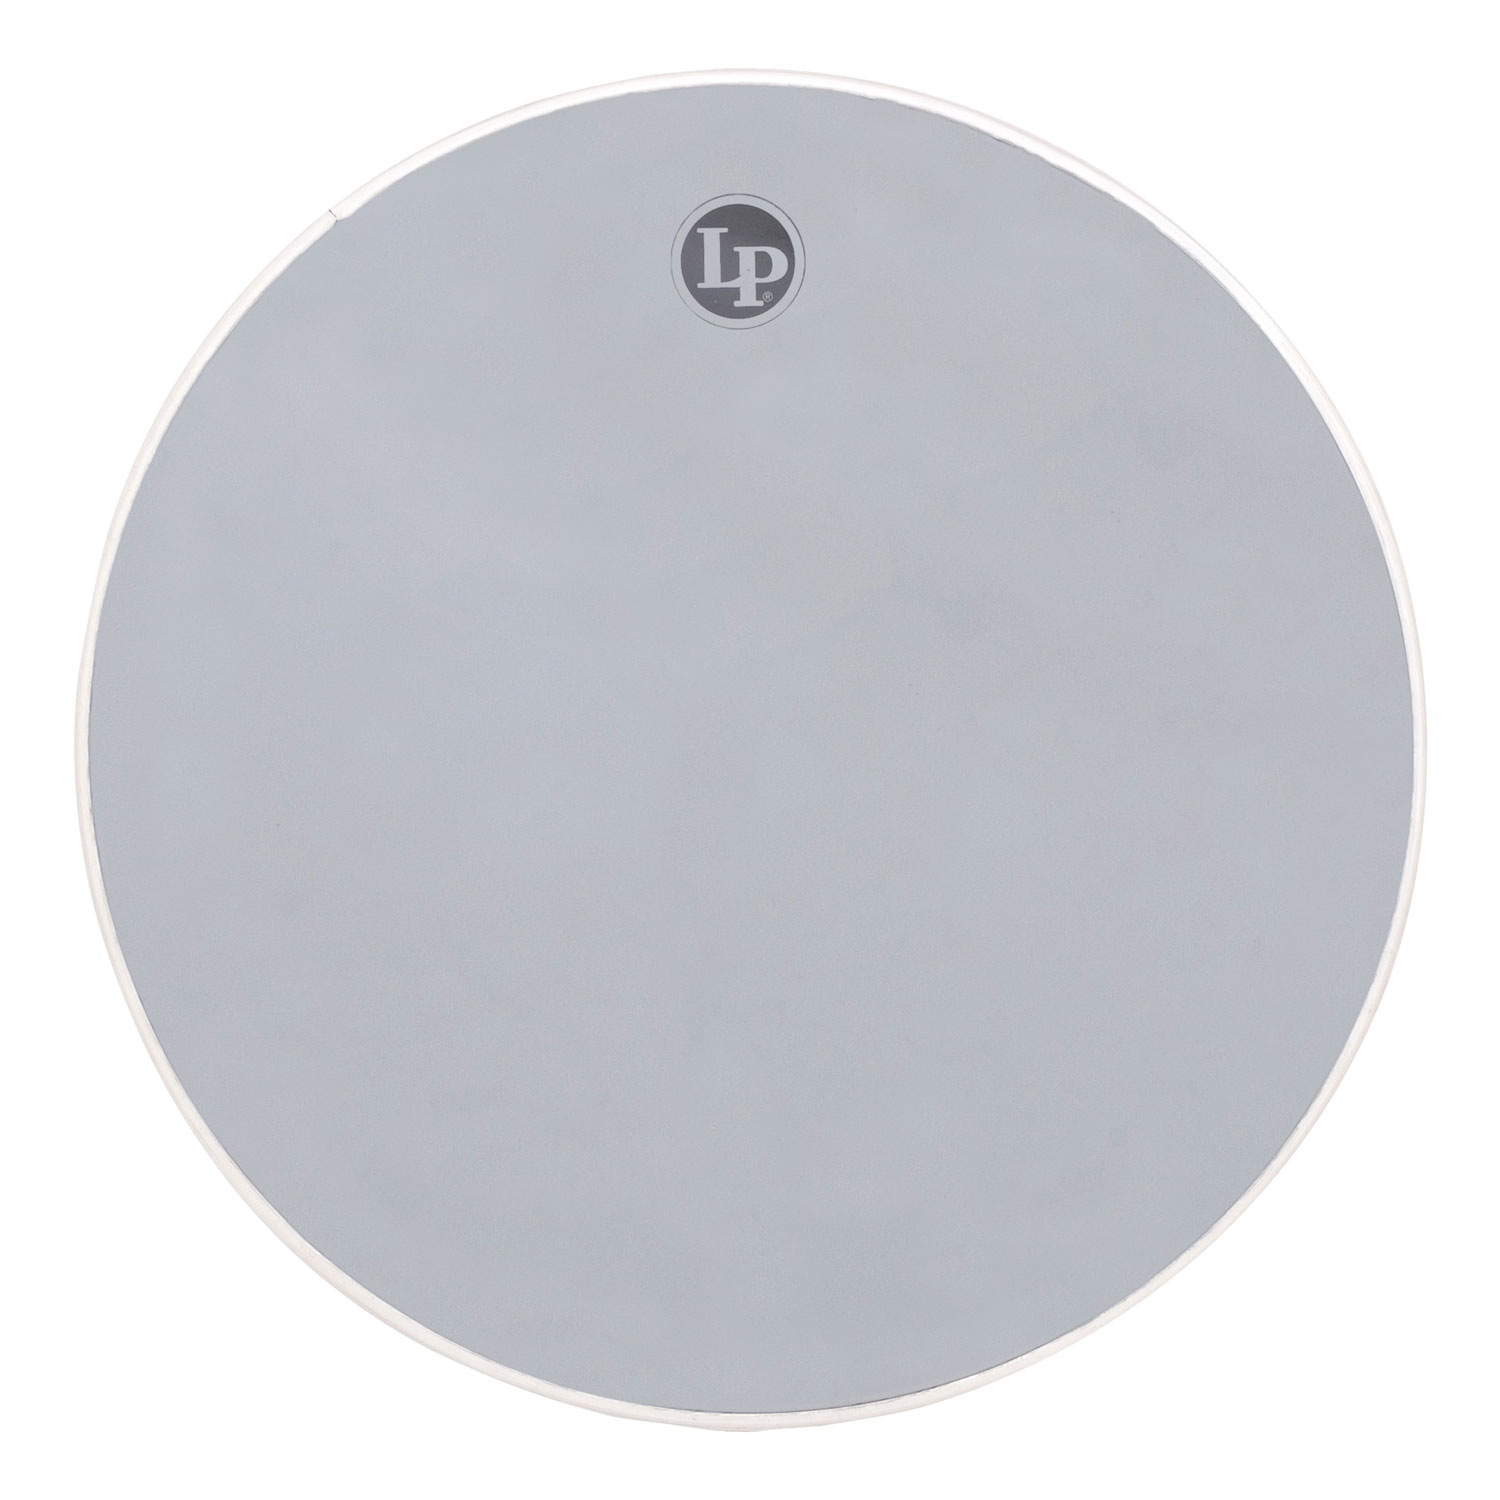 "LP 12"" Repinique/Caixa Head"